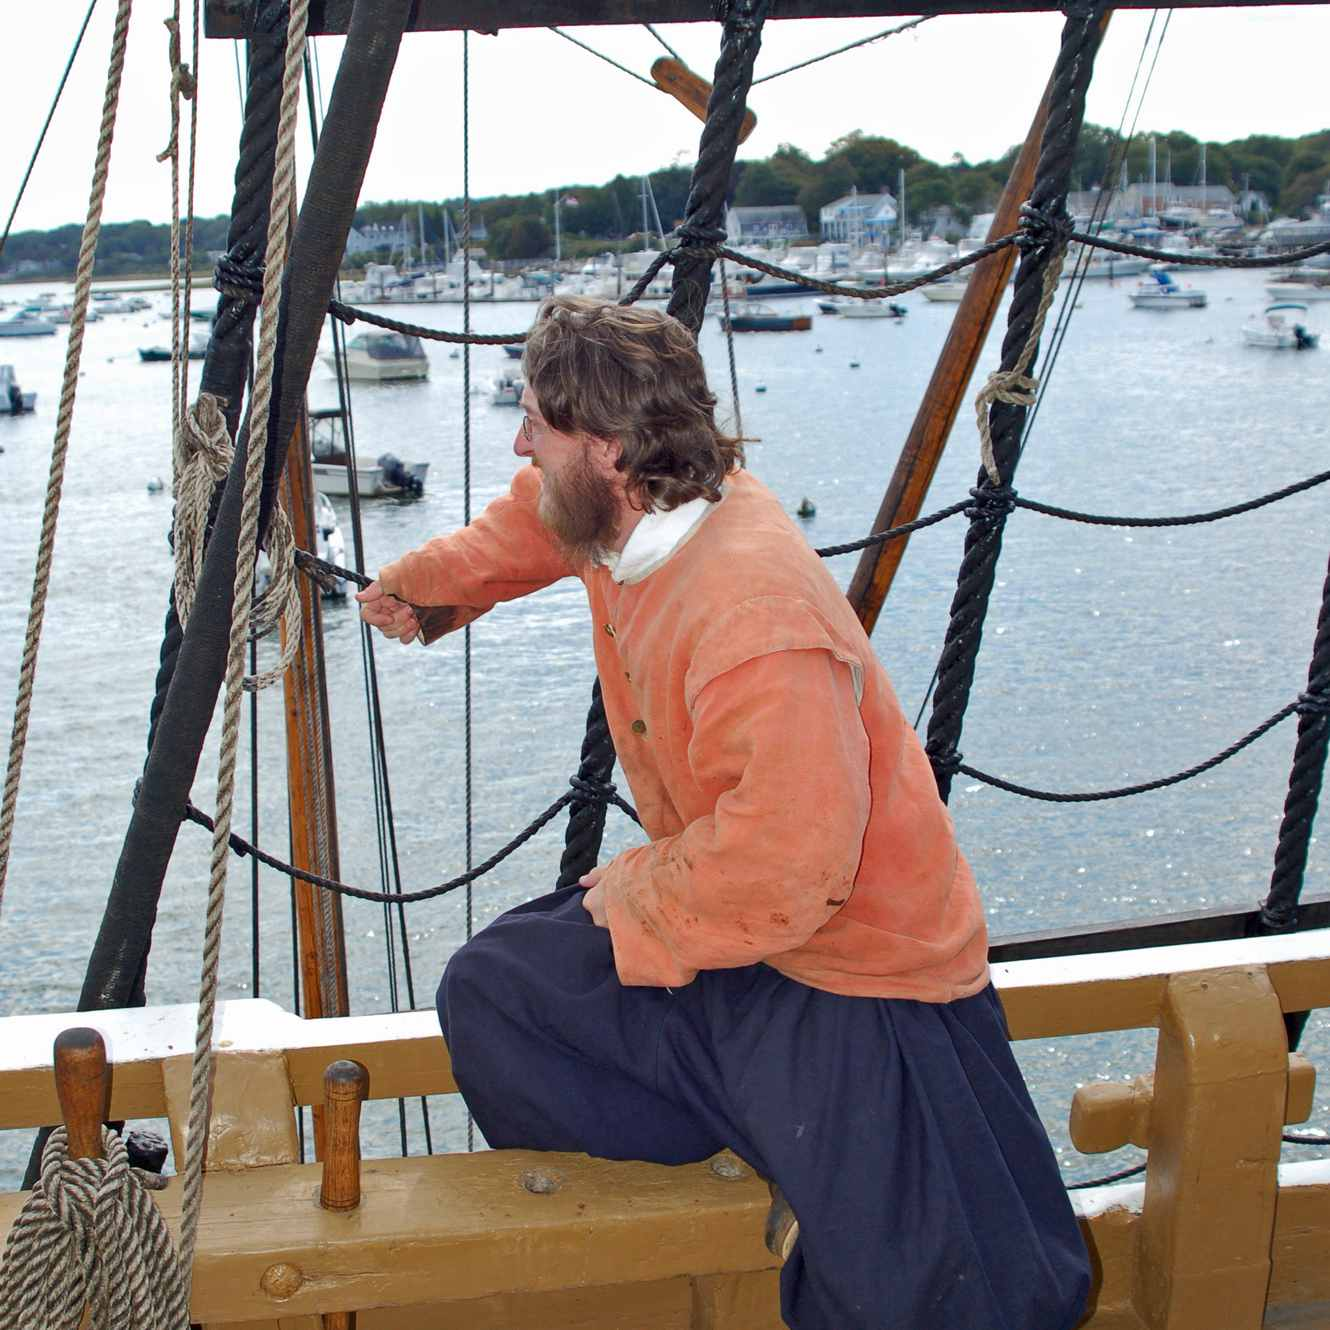 Pilgrim Role Player Aboard the Mayflower II in Plymouth MA